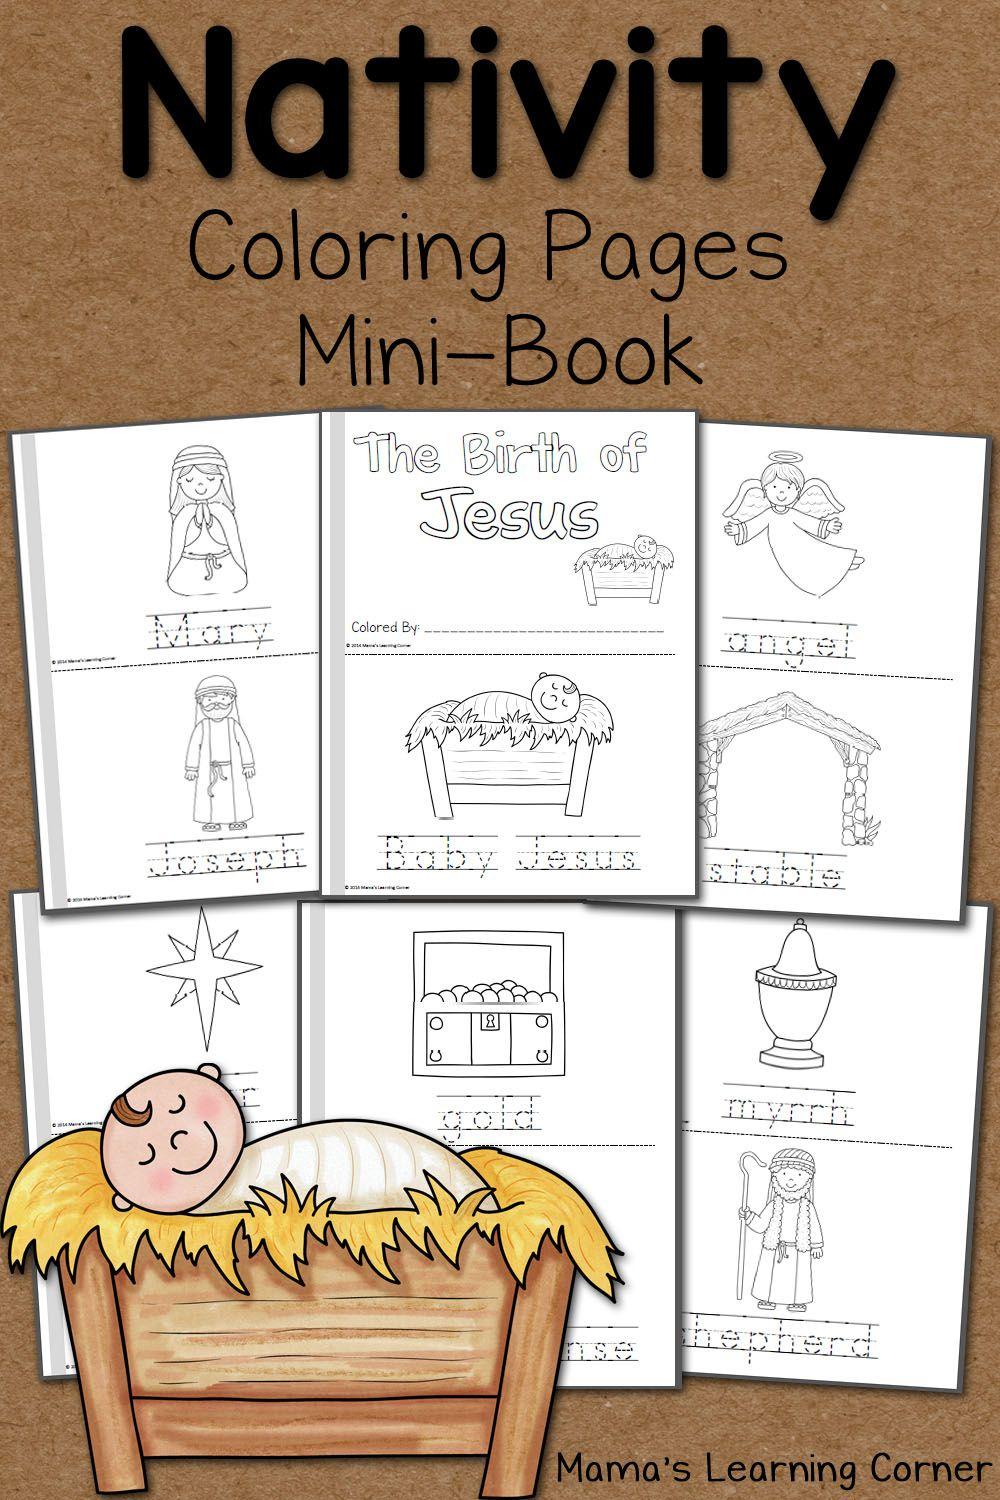 Nativity Coloring Pages   Ultimate Homeschool Board   Nativity - Free Printable Christmas Story Coloring Pages